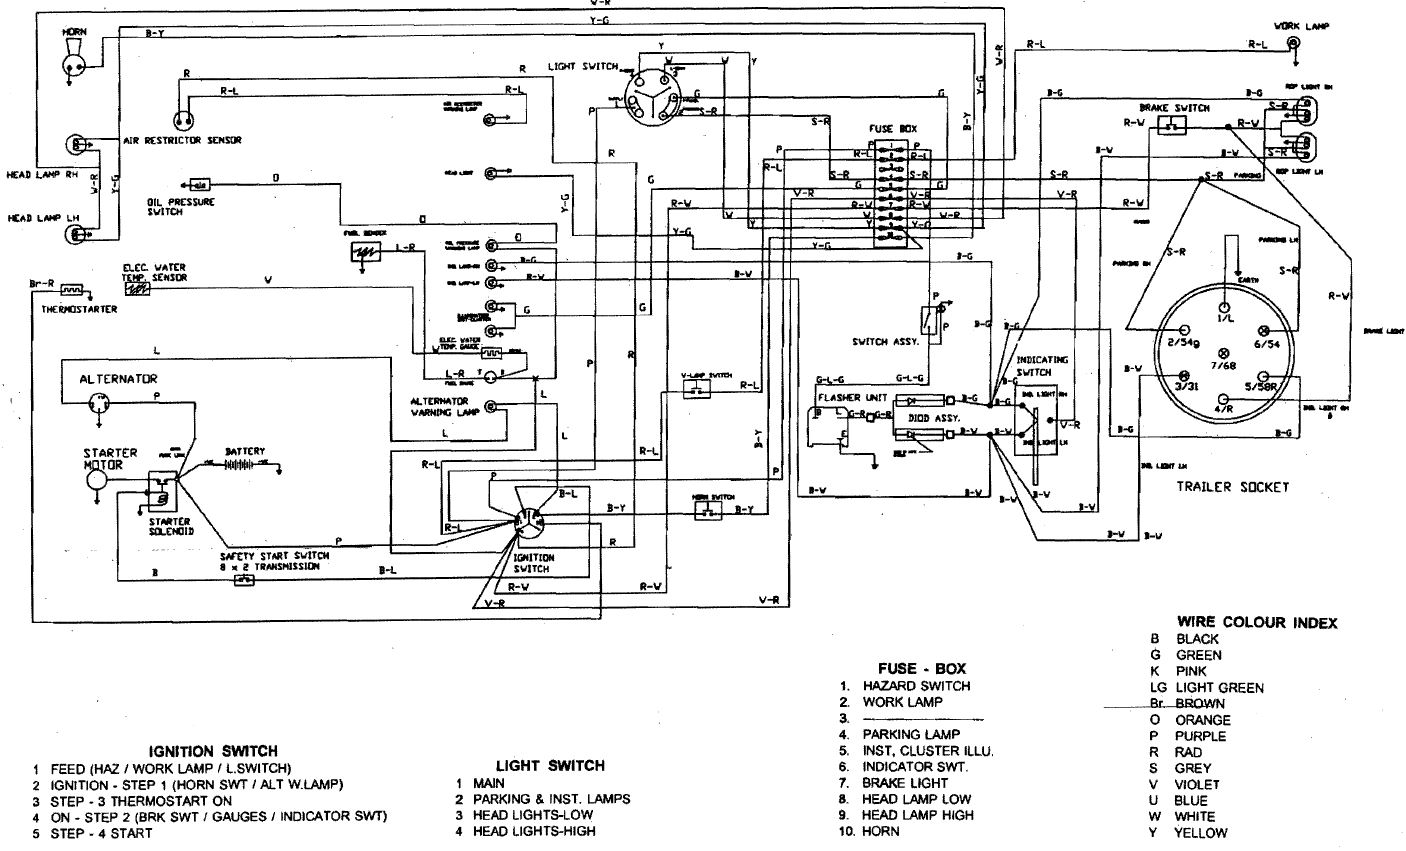 hight resolution of kubotum key switch wiring diagram